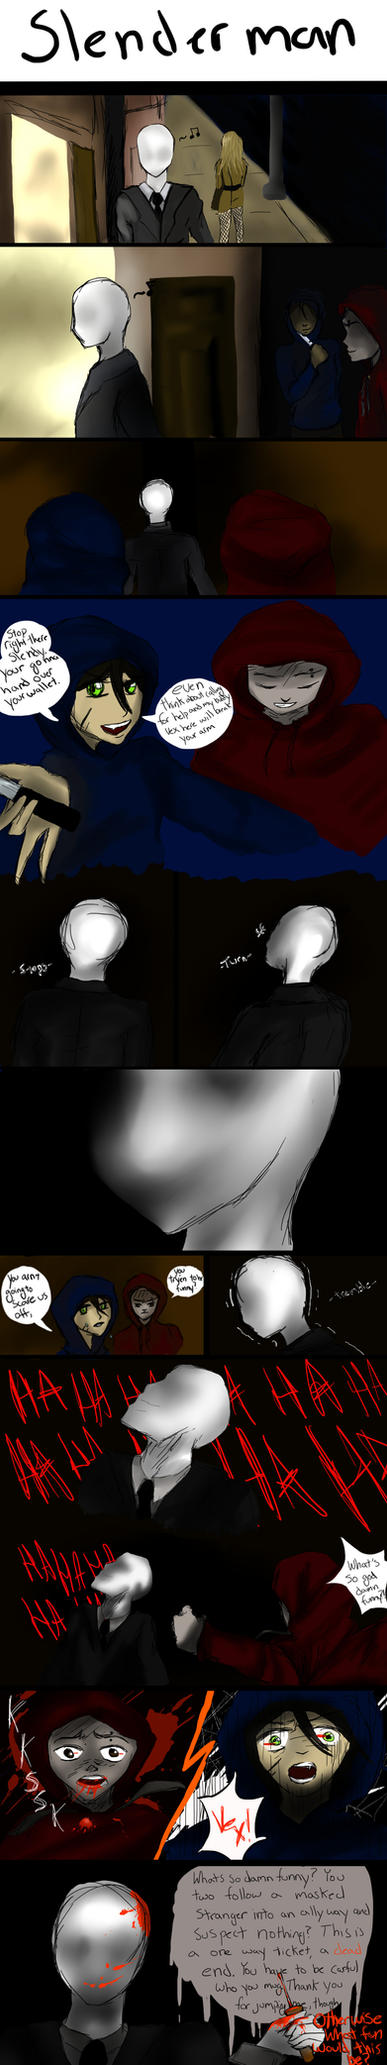 Slender man comic: by all-the-lovely-death